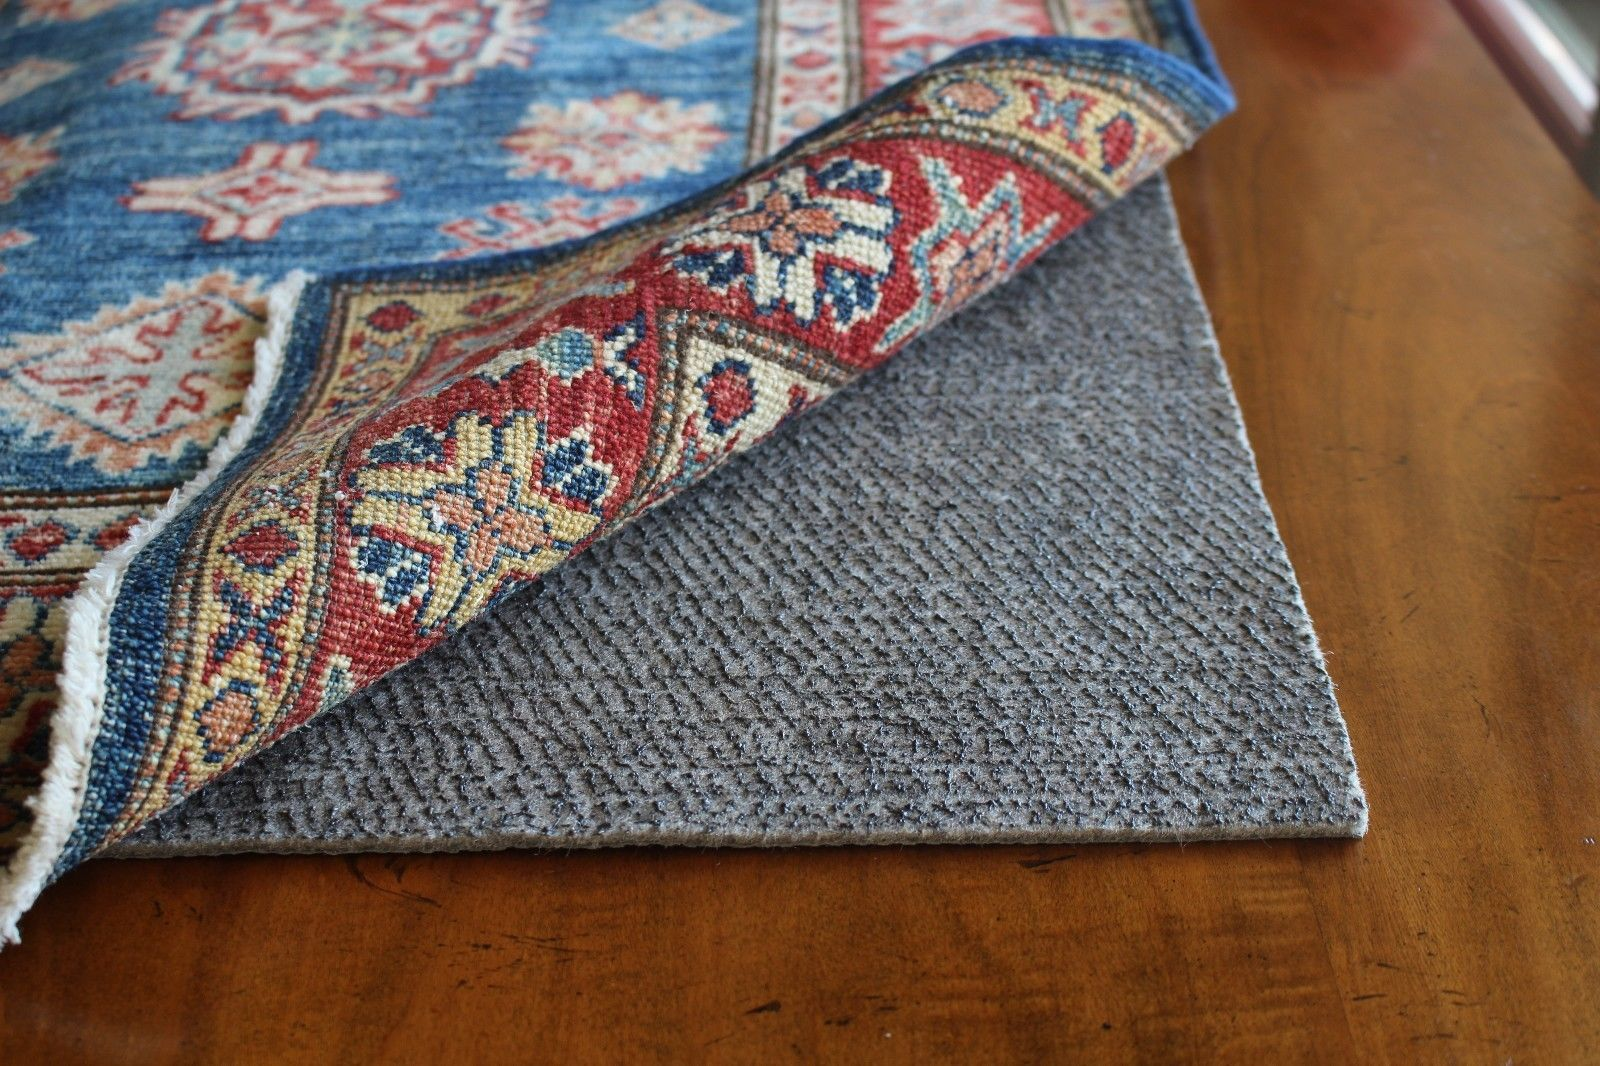 14 95 Rubber And Felt Rug Pads Non Slip Padding Non Skid For Area Rugs 1 8 Rug Pad Ebay Home Garden